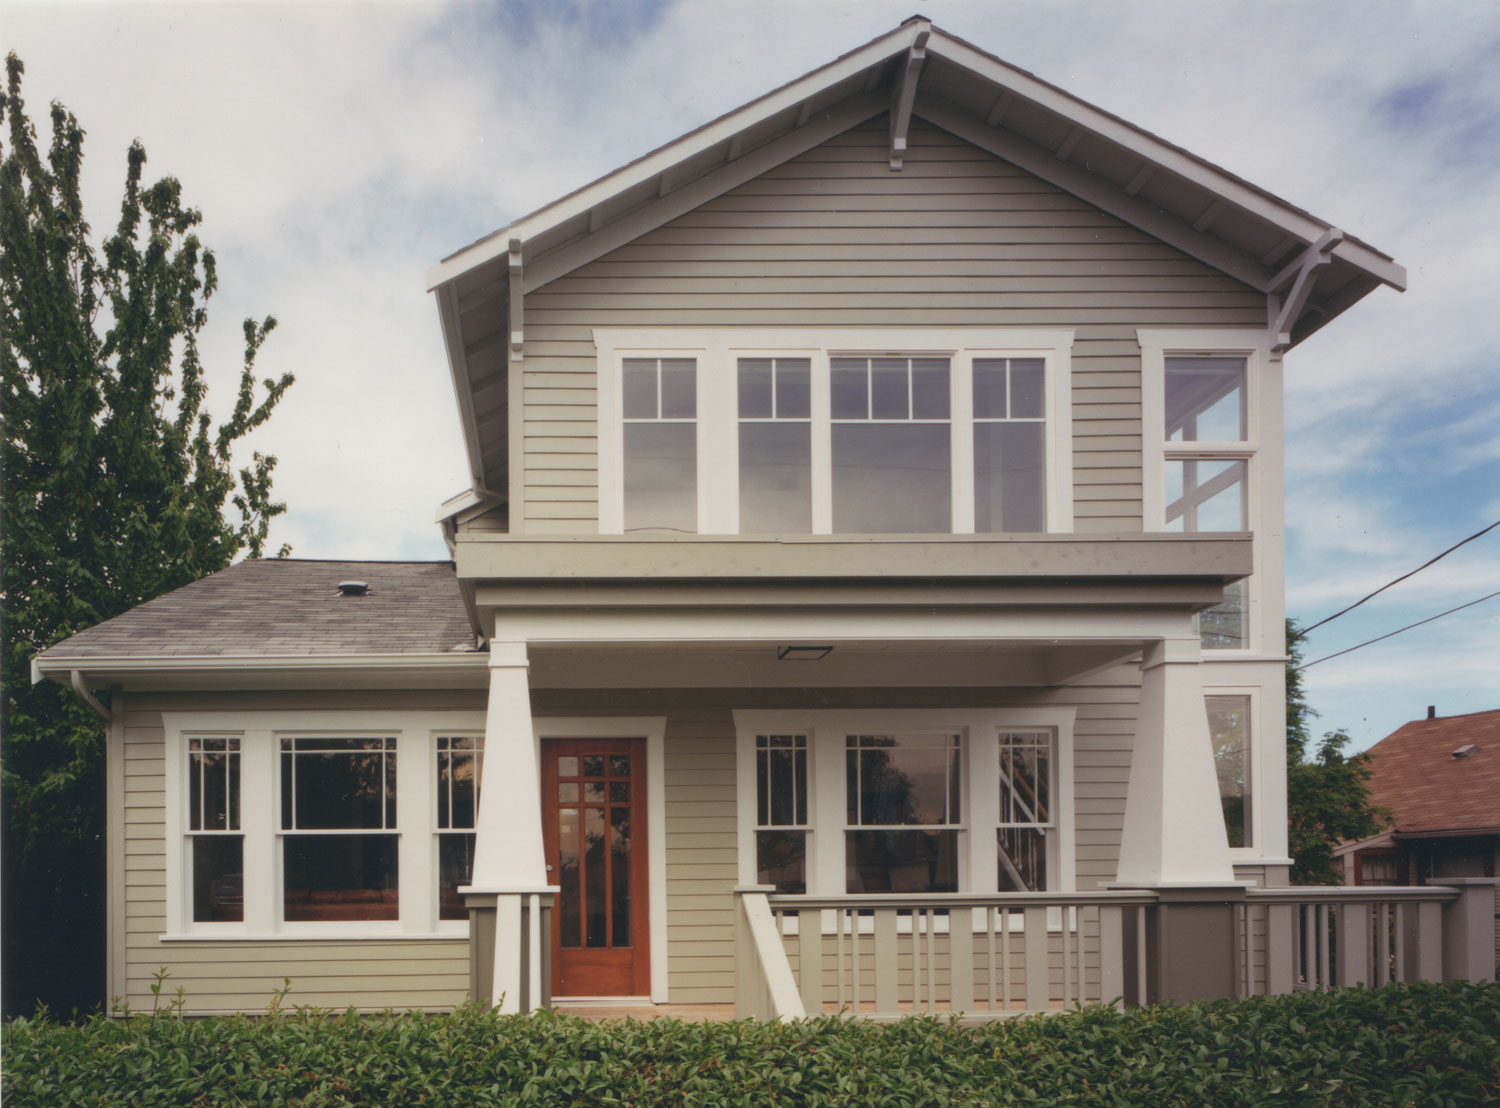 Craftsman Second Story - Seattle Architects - CTA Design Builders - Transitional, Addition, Remodel